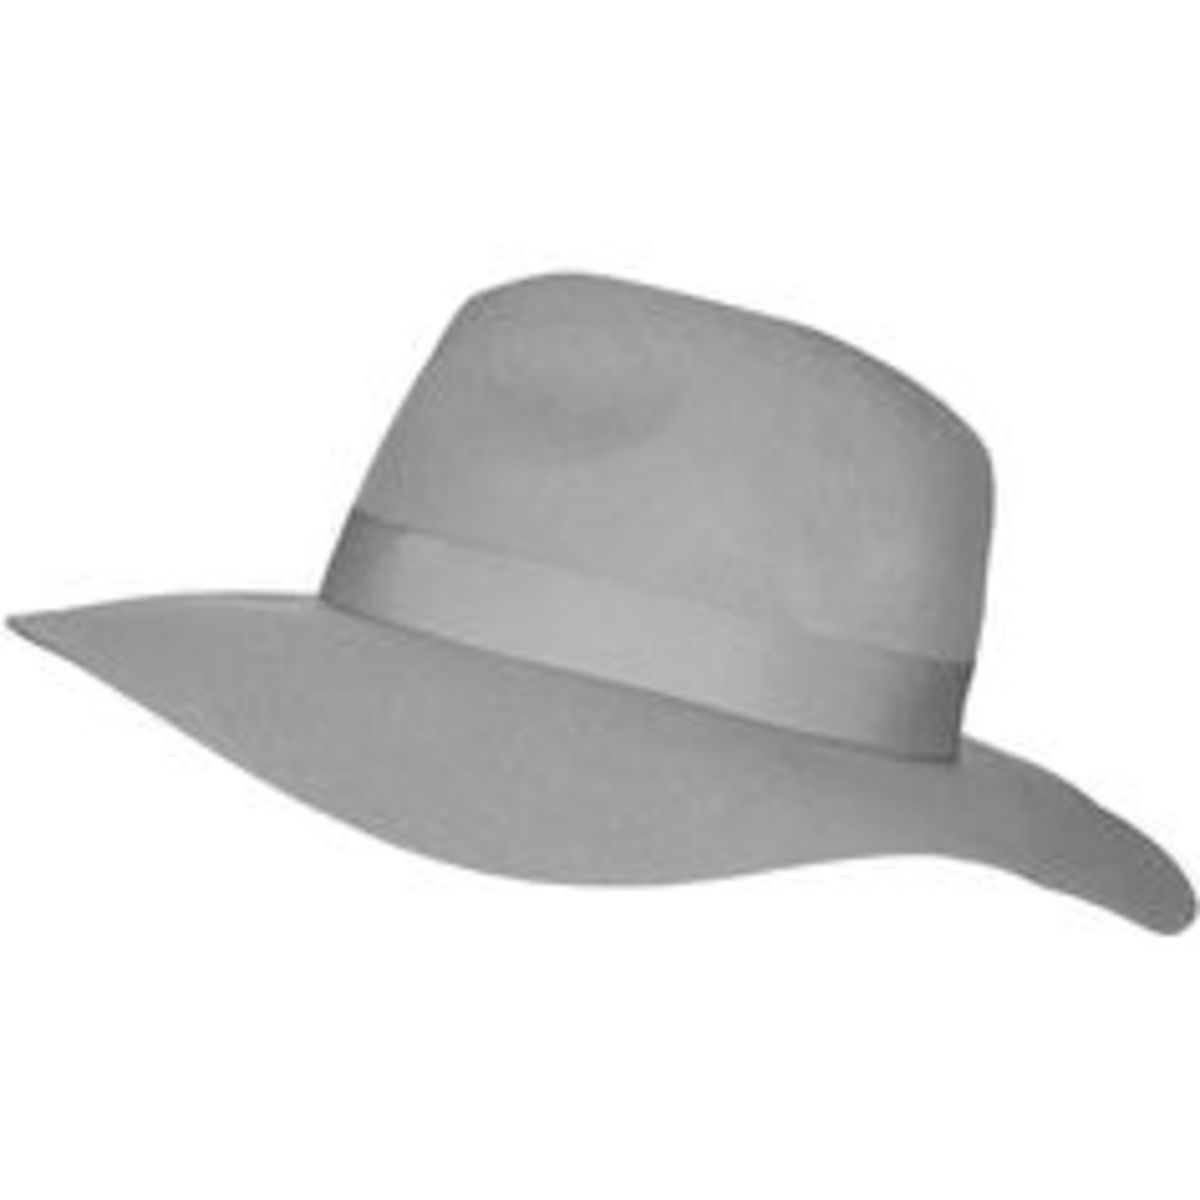 Be careful which hat you wear in SEO